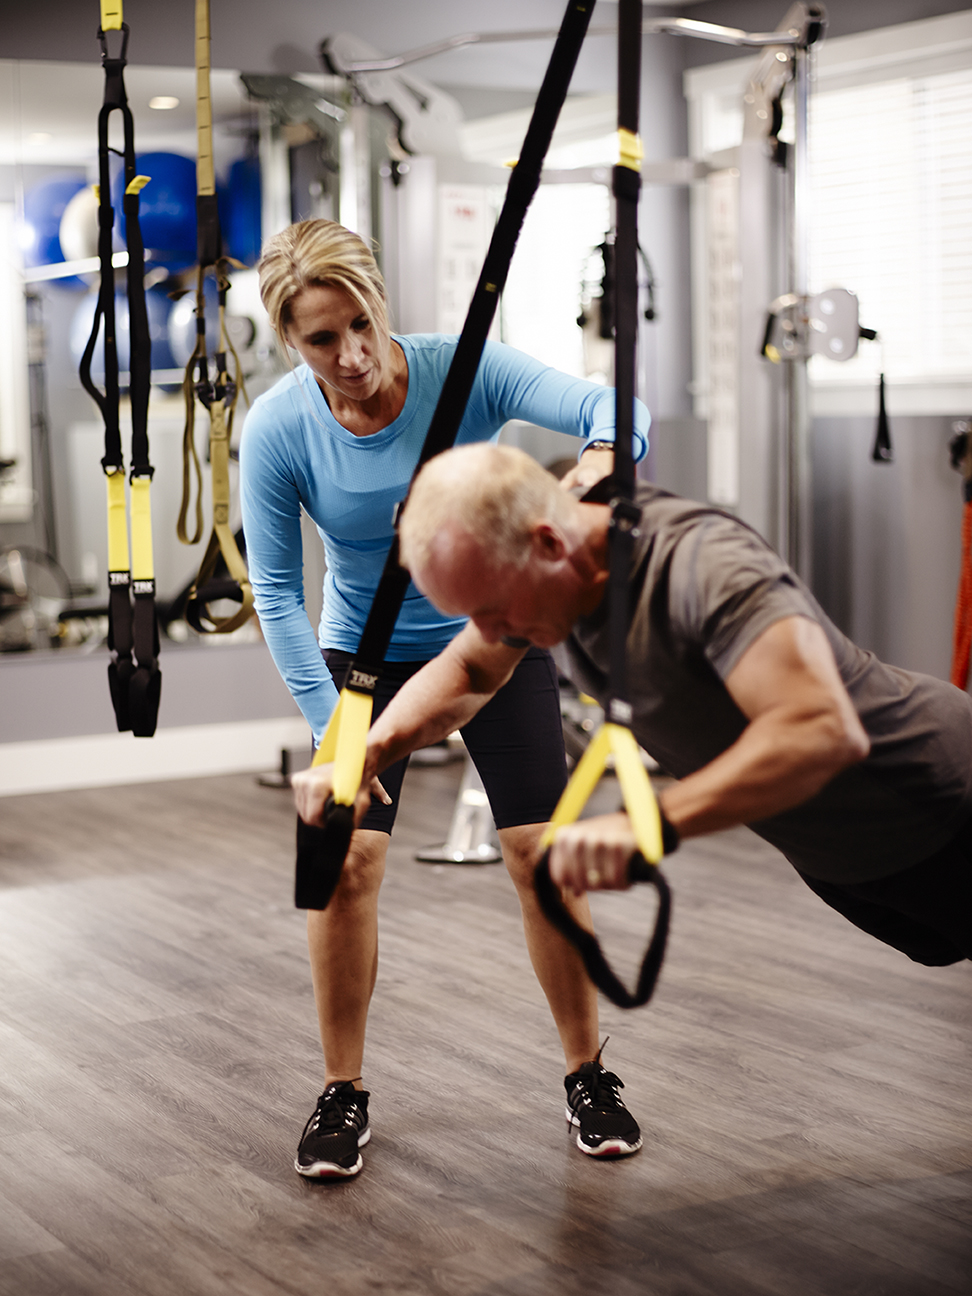 Push-ups using a TRX